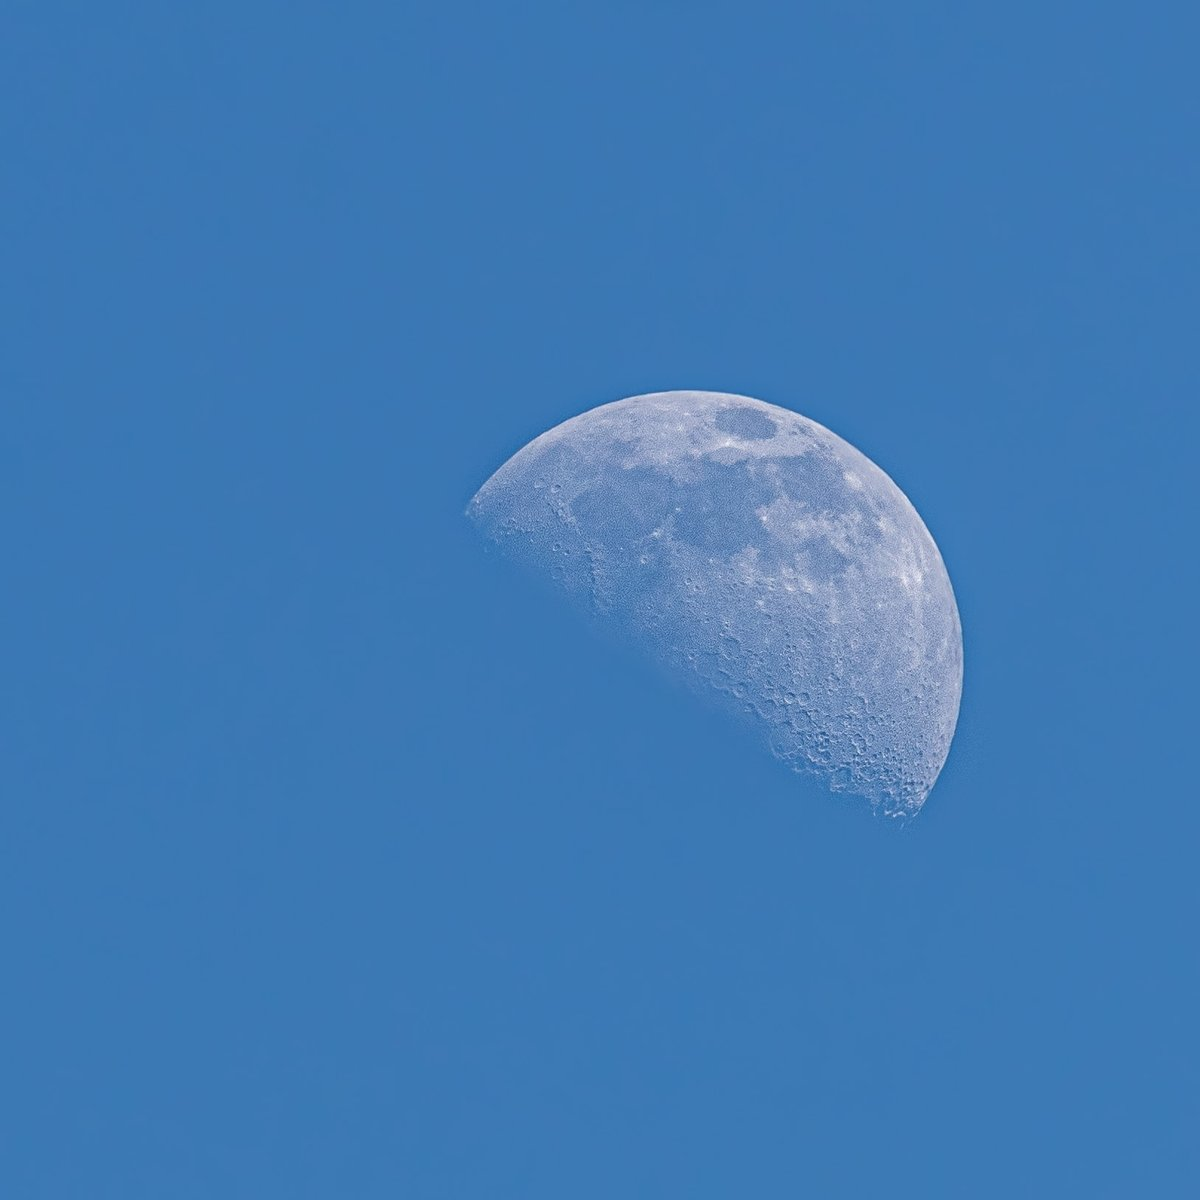 The moon approximately 1 hour ago, 56% via Canon 300m L on Canon 80D @VirtualAstro @CathAdams1973  #SpaceX  #moon